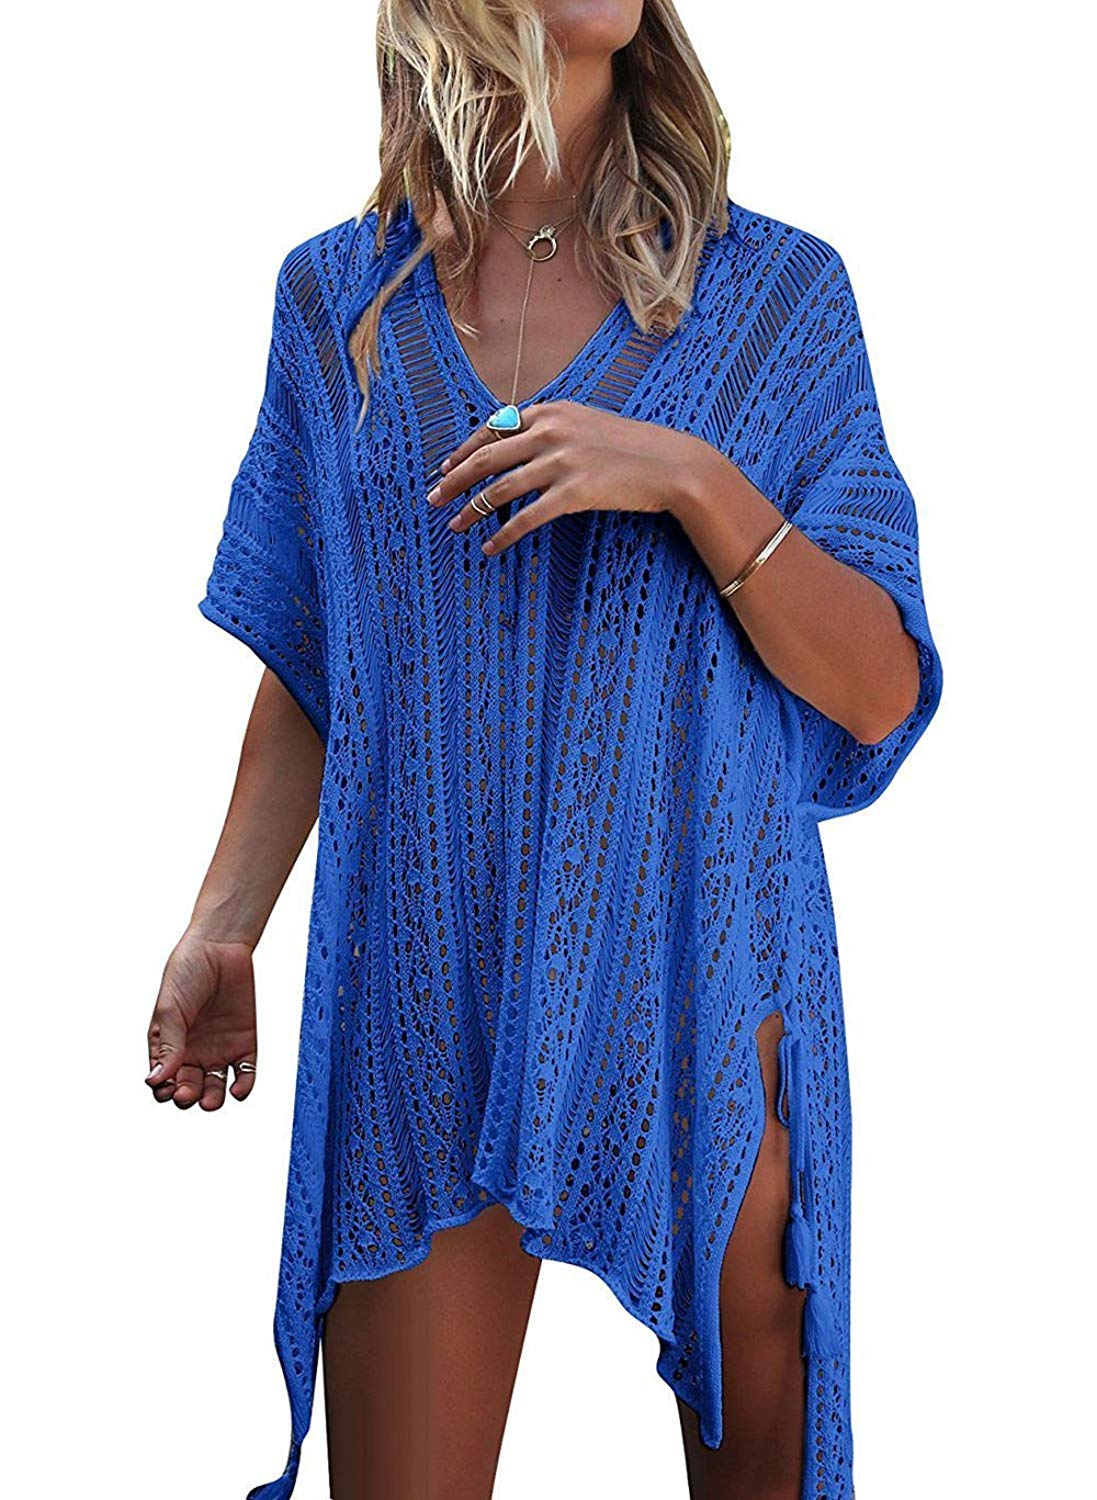 4be40a9a3ee94 Buy Simplicity Swimsuit Cover-Up Dress in Smooth Stretch Fit